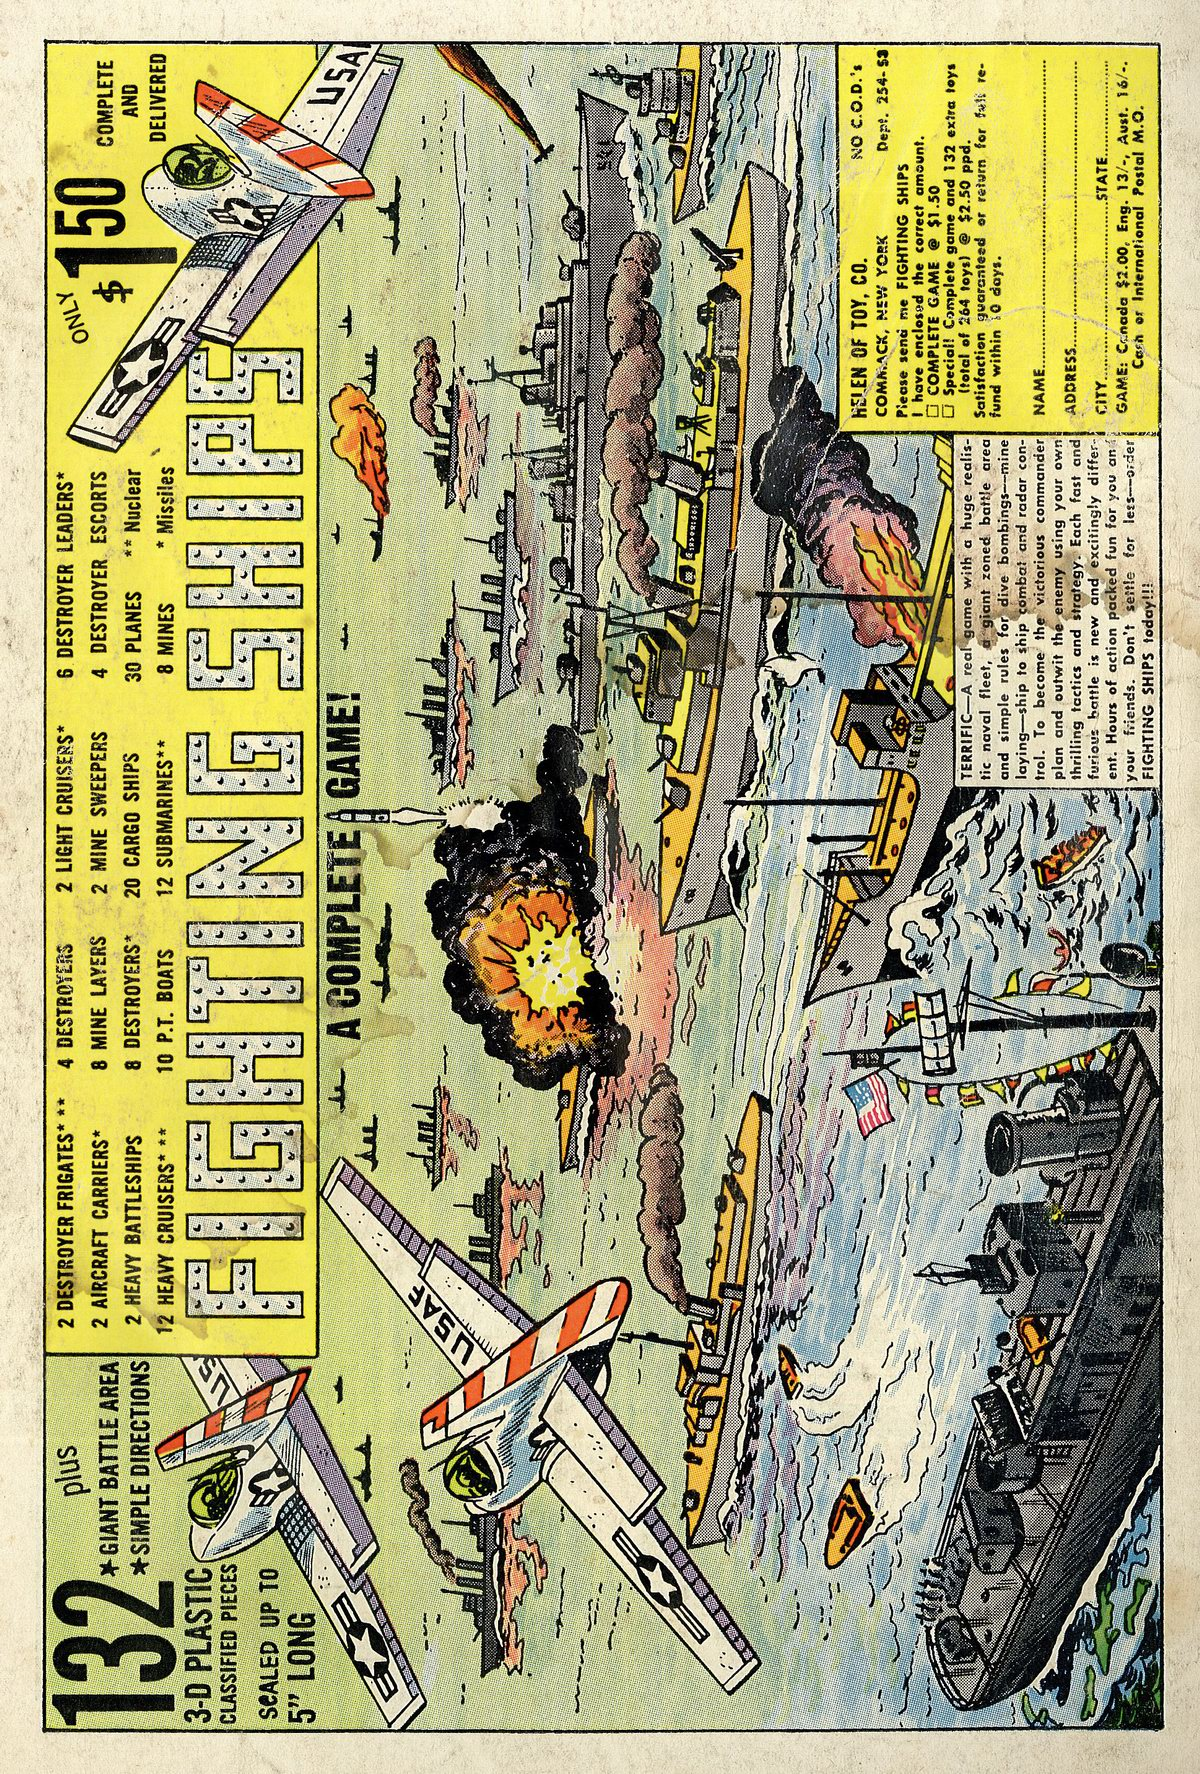 Read online 80 Page Giant comic -  Issue #11 - 84